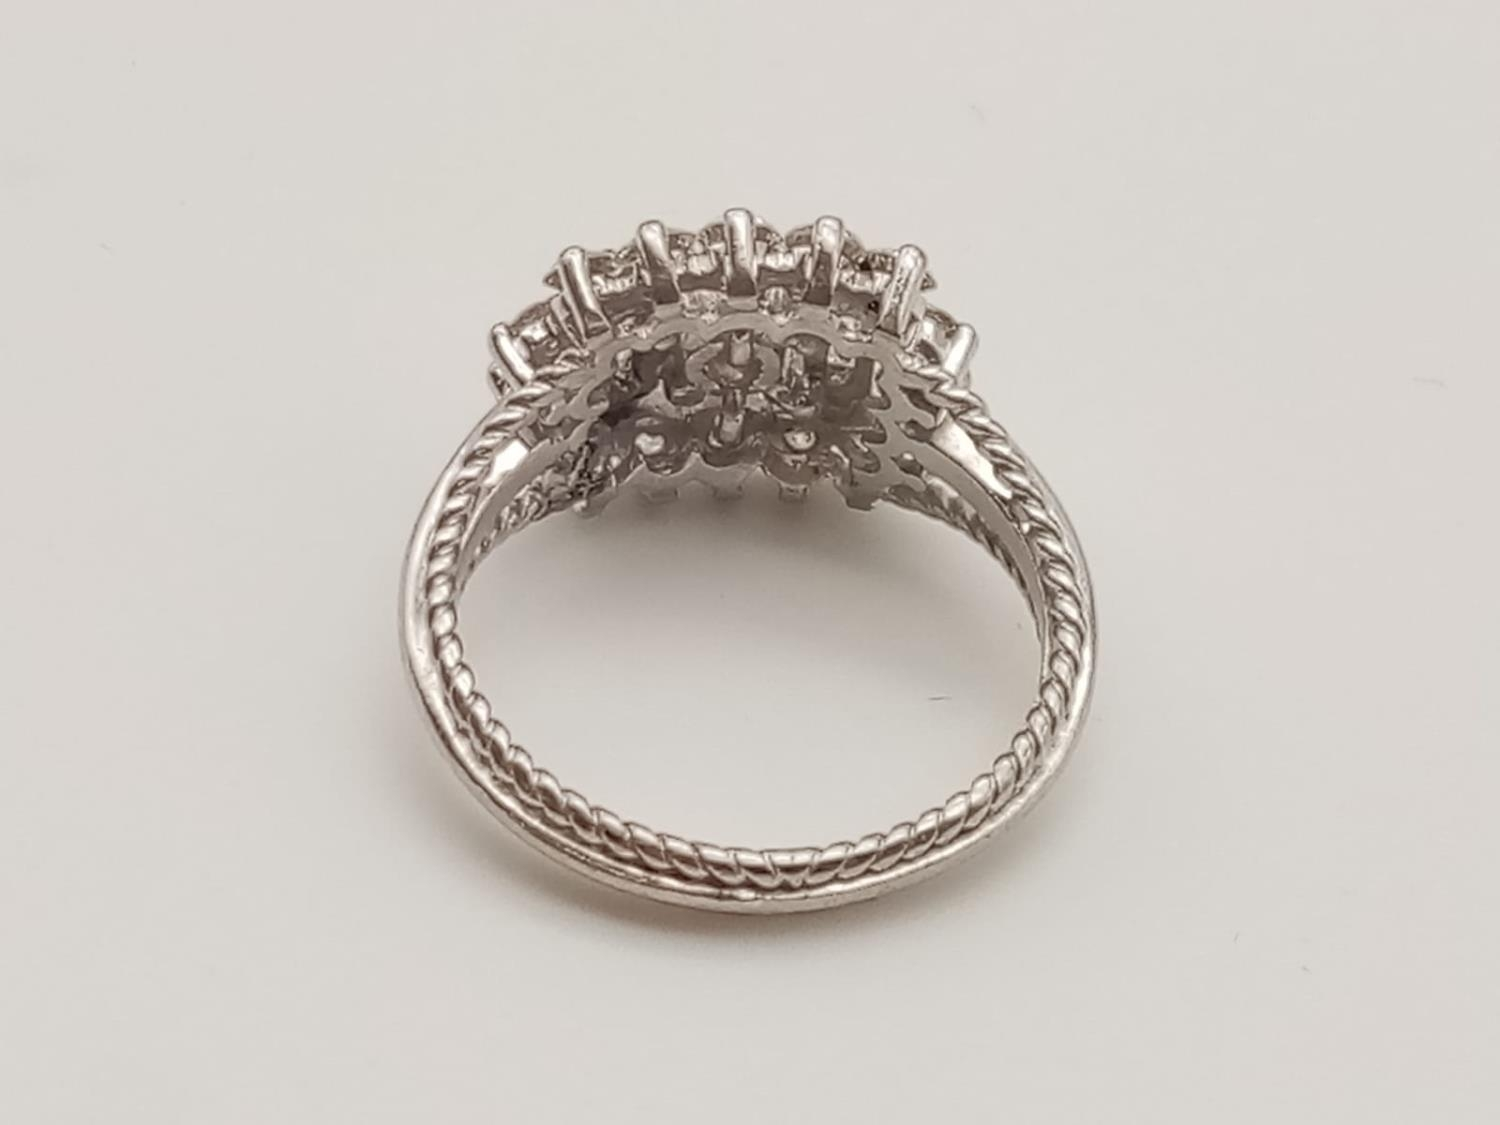 18k white gold diamond ring, WEIGHT 7.6G with over approx 2ct of top quality diamonds, size N1/2 - Image 3 of 6